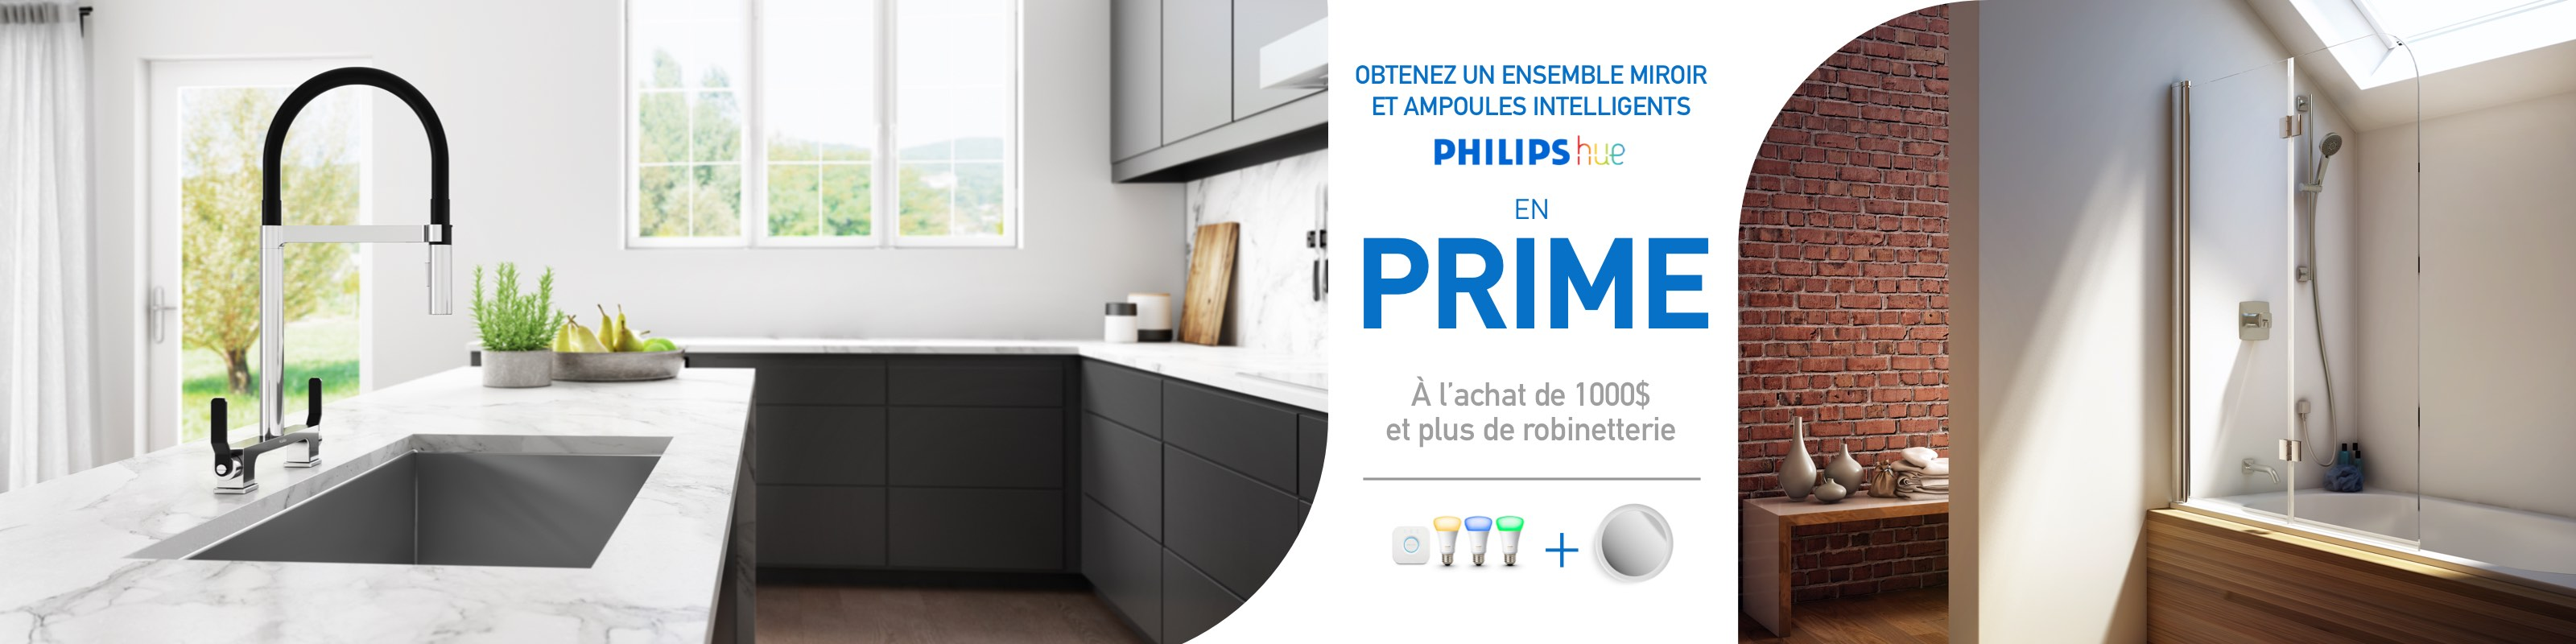 https://cdn.tanguay.ca/userfiles/images/campagne/2021/tanguay/06-_demenagement/nouvelle-version/web_carrousel_1600x400_plomberie_2x_v3.jpg